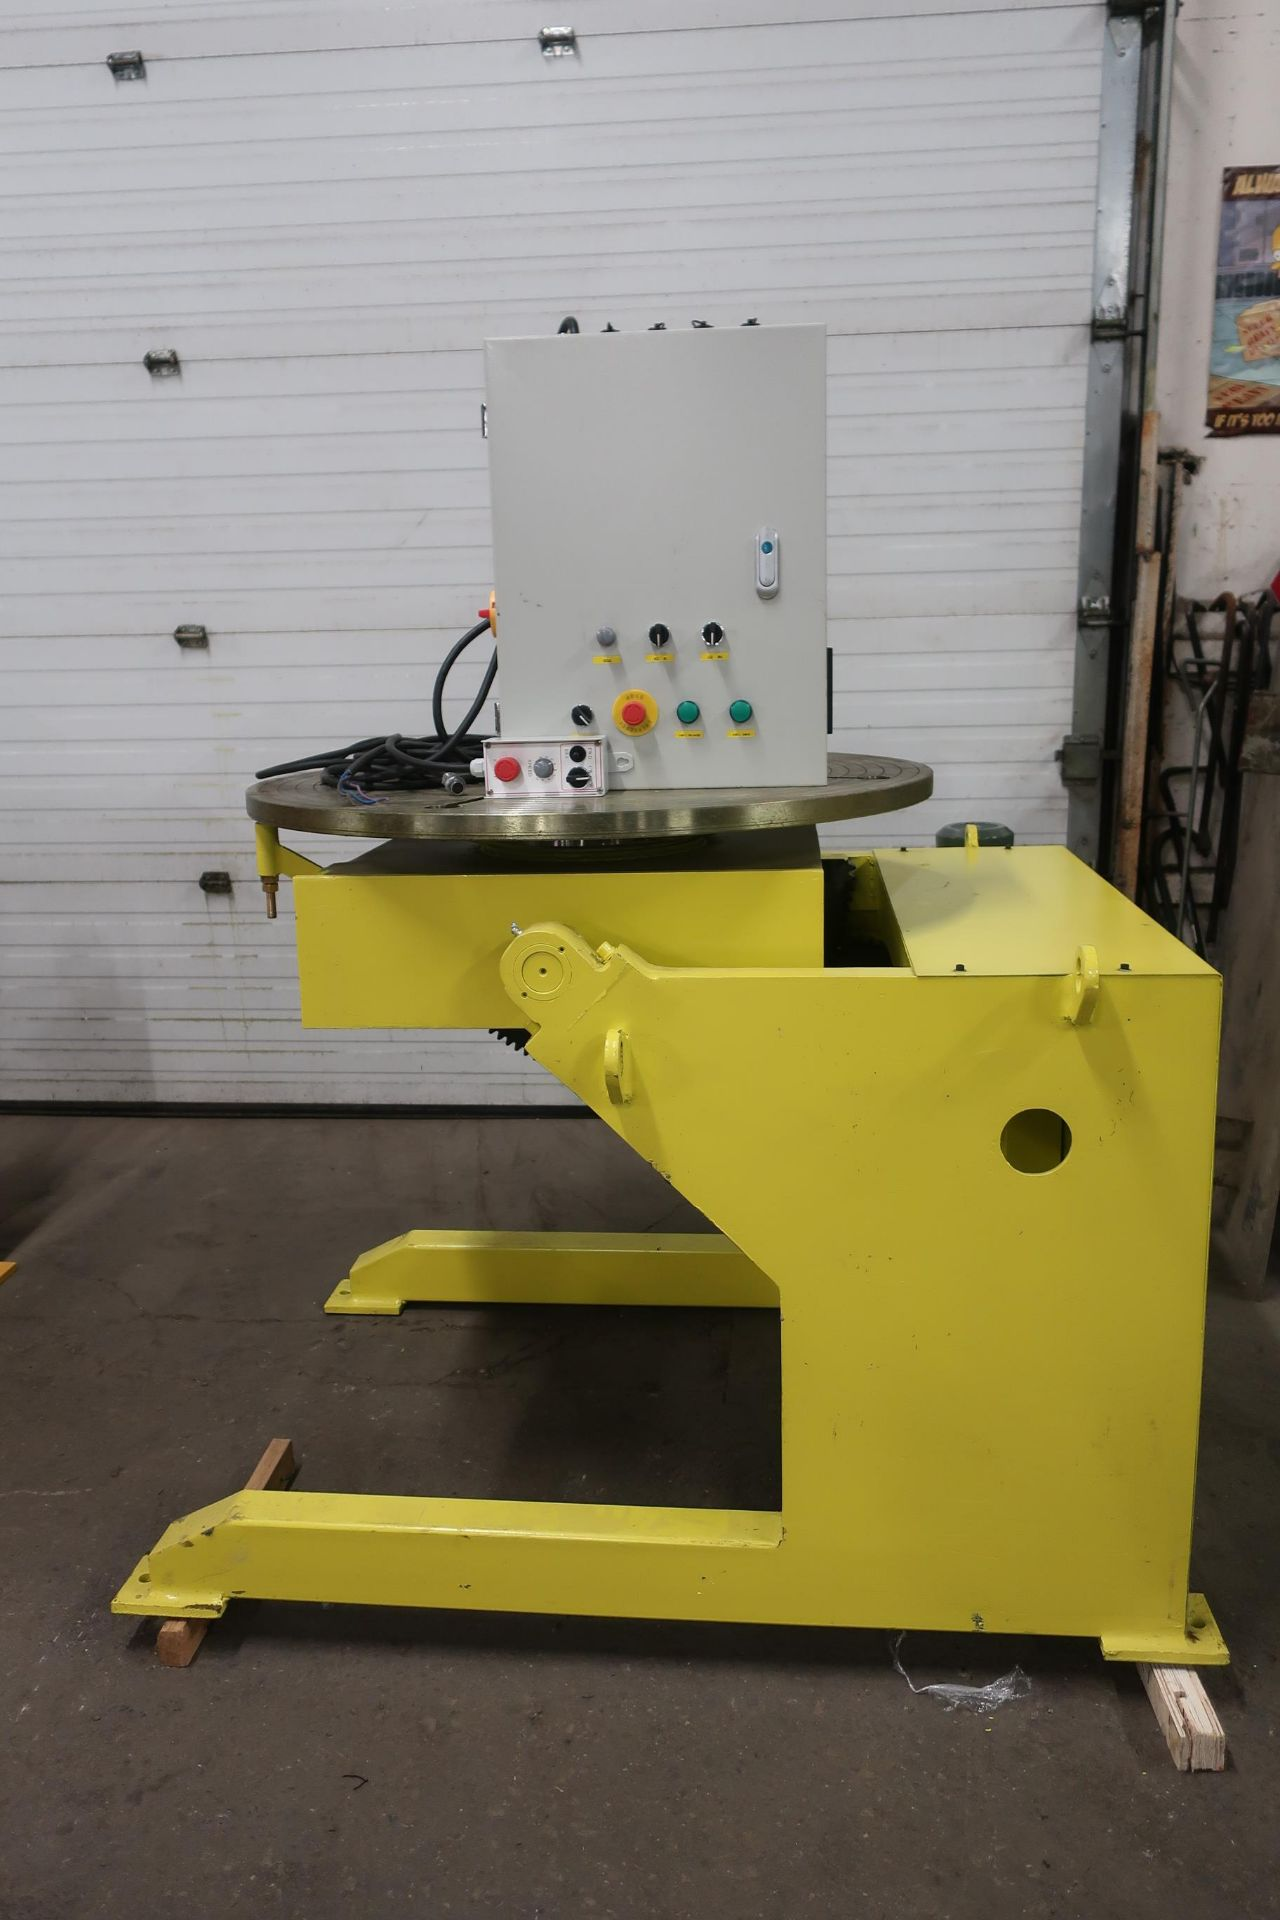 Verner model VD-2500 WELDING POSITIONER 2500lbs capacity - tilt and rotate with variable speed drive - Image 2 of 3